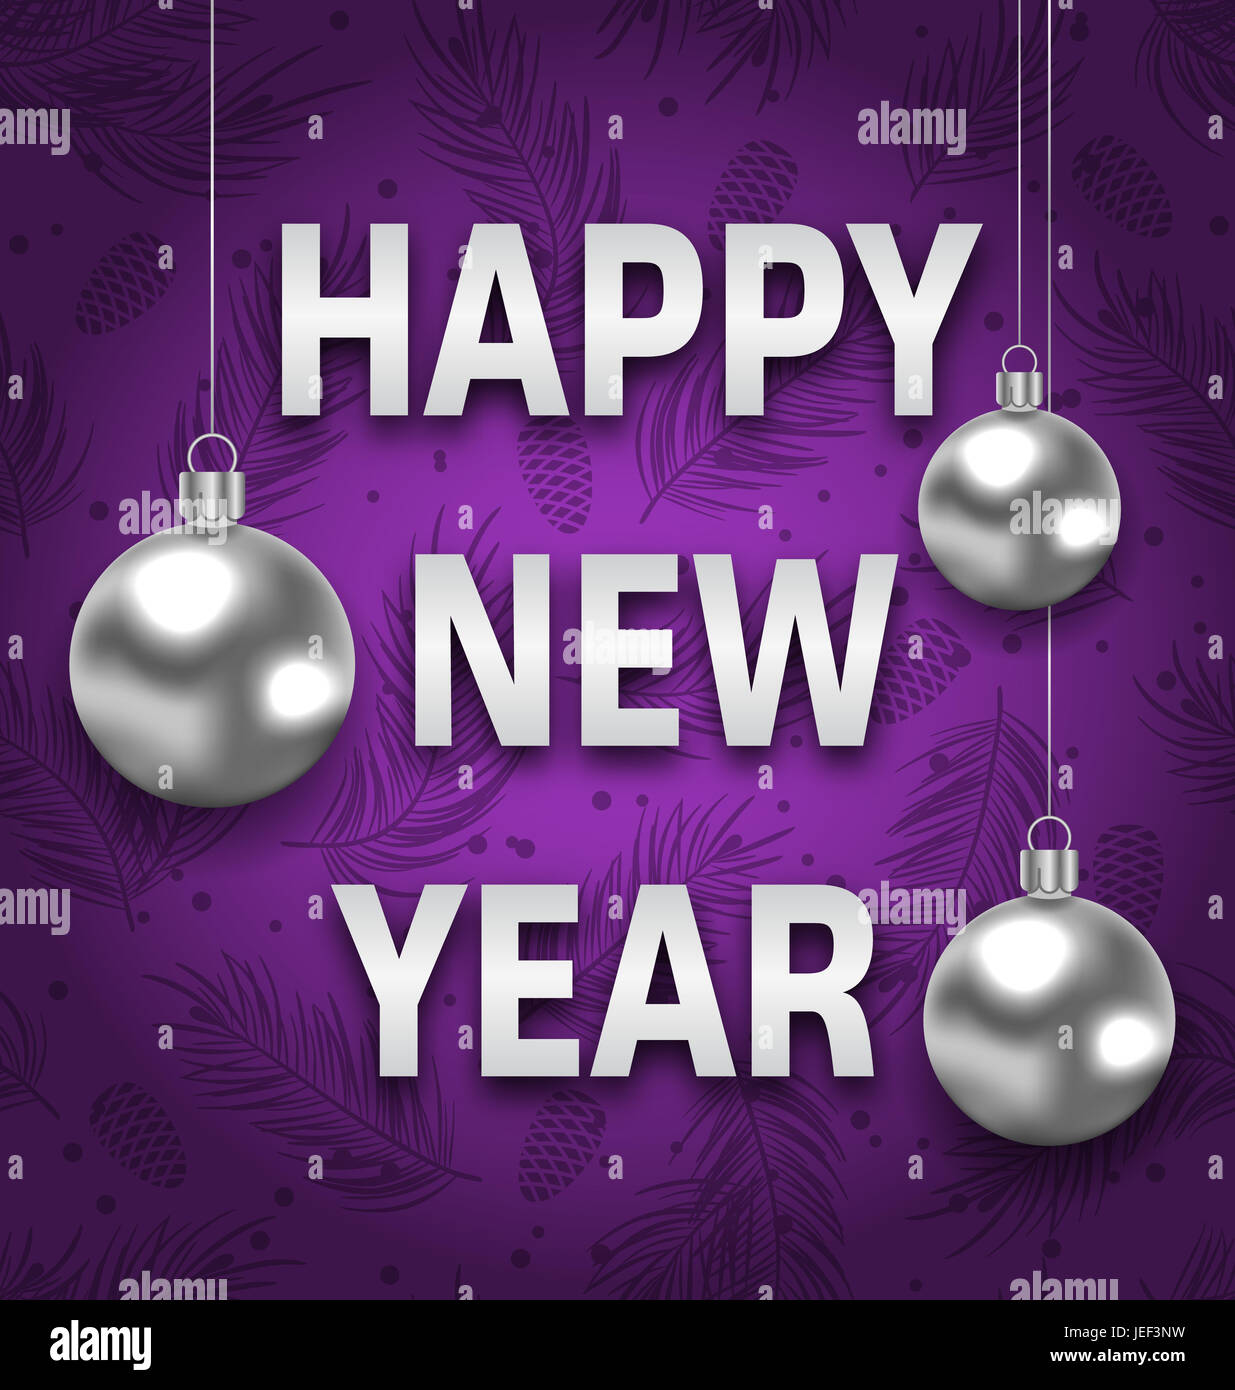 illustration happy new year card with silver balls on purple background greeting postcard for winter holidays